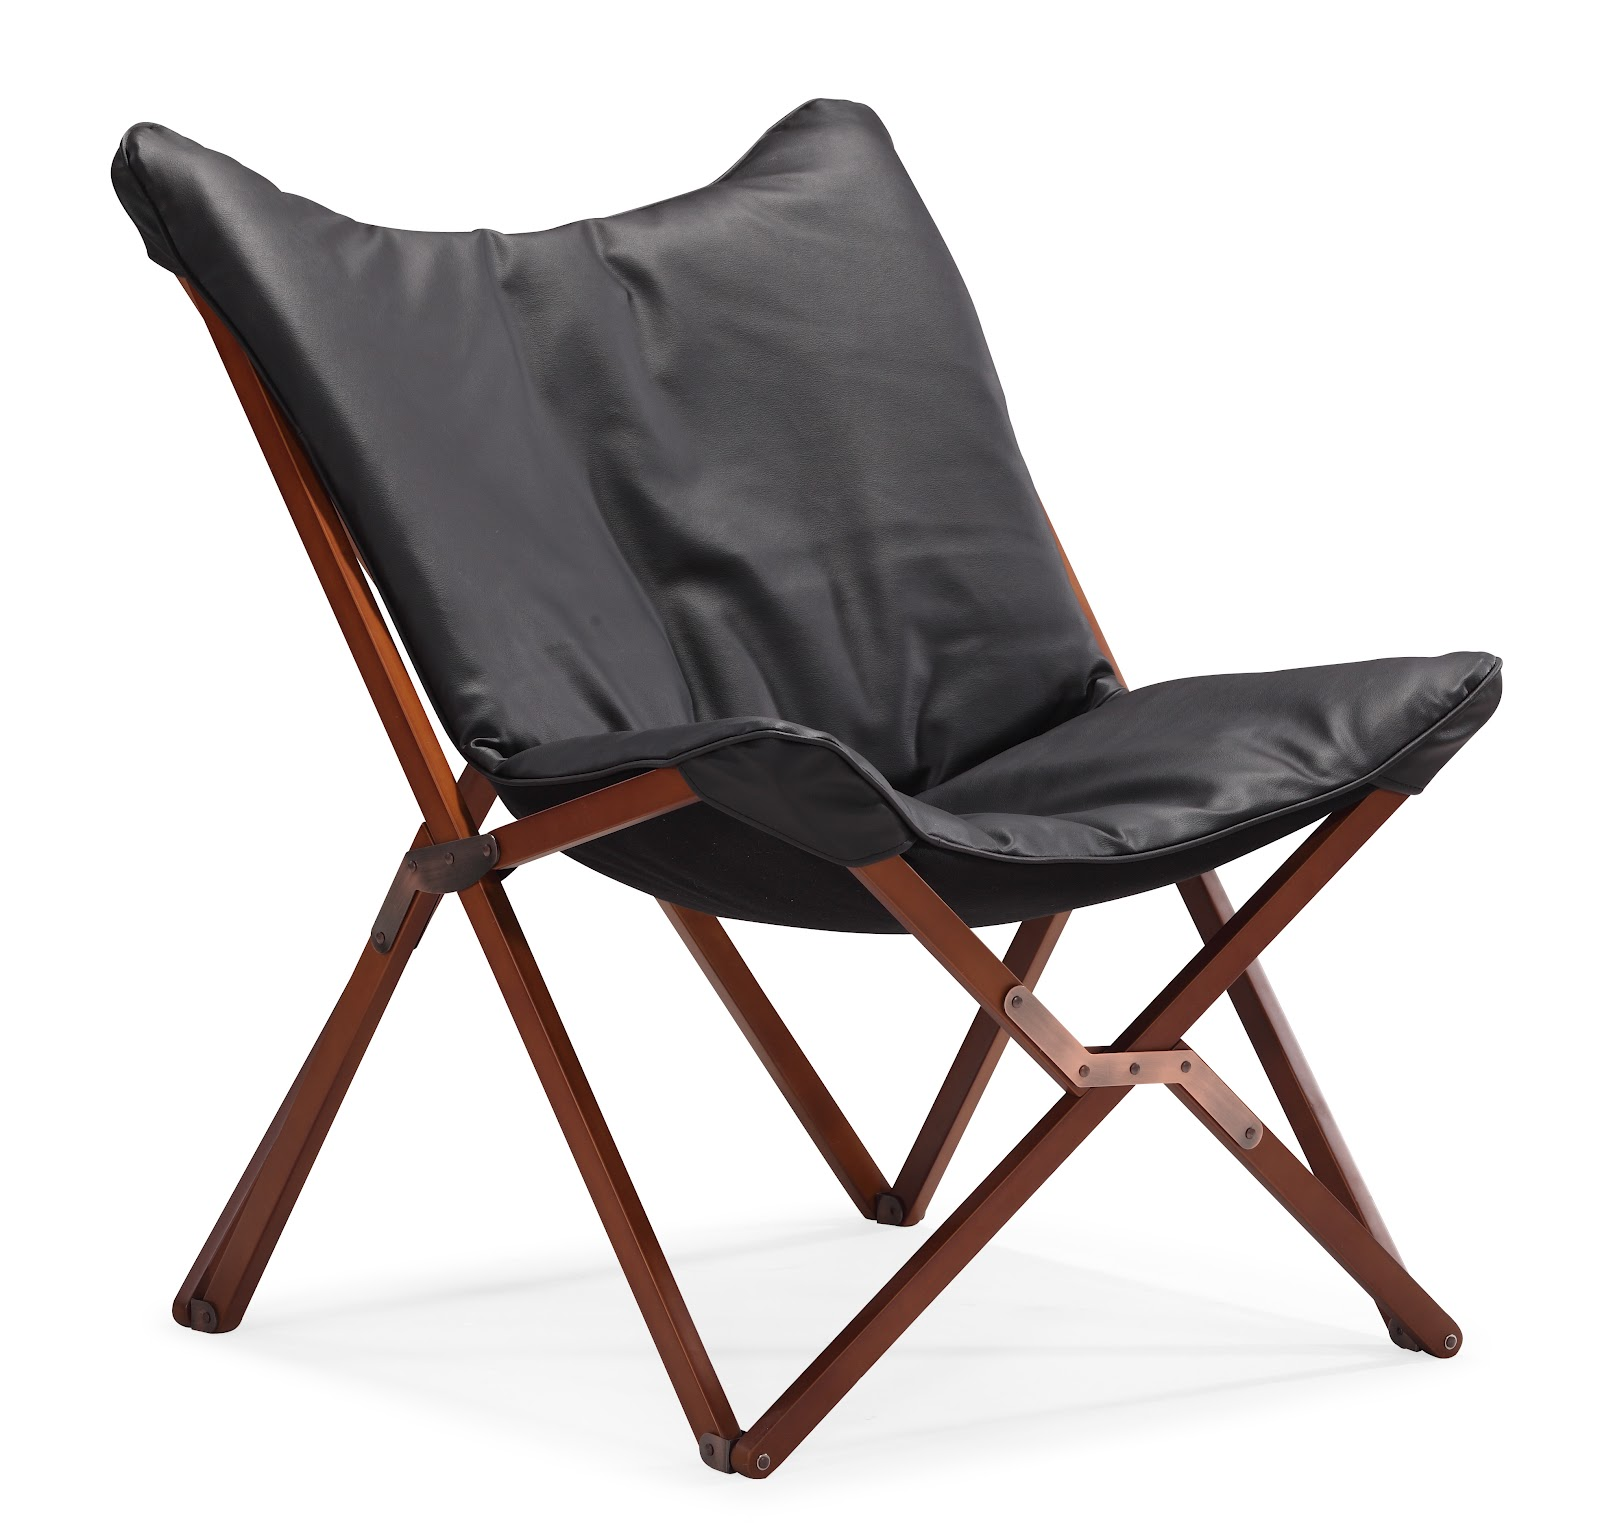 most comfortable folding chair the is against wall shirt comfort to go